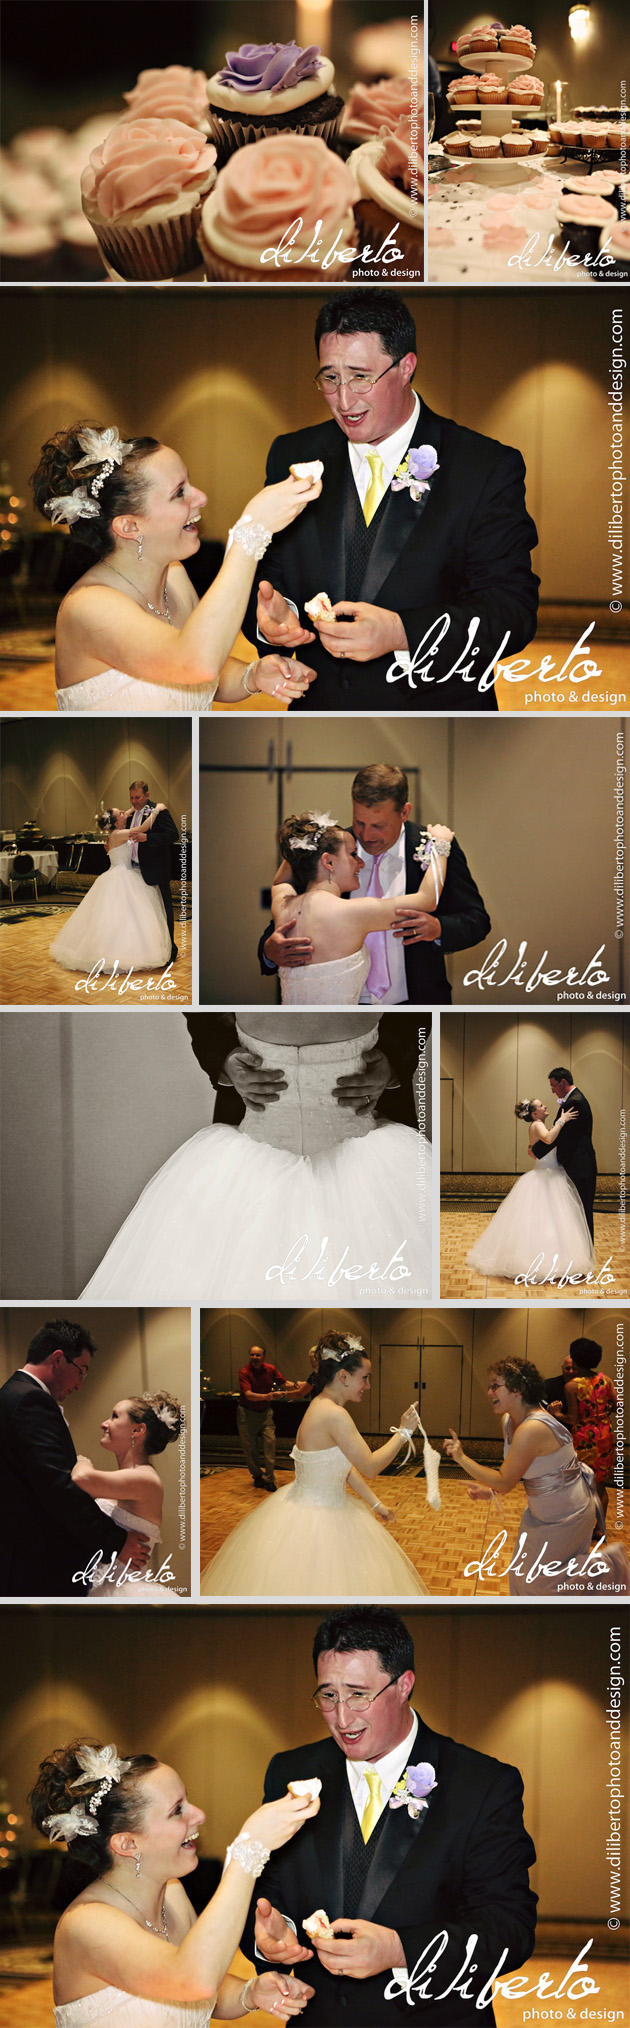 Laura-Michael-WeddingP2-1.jpg